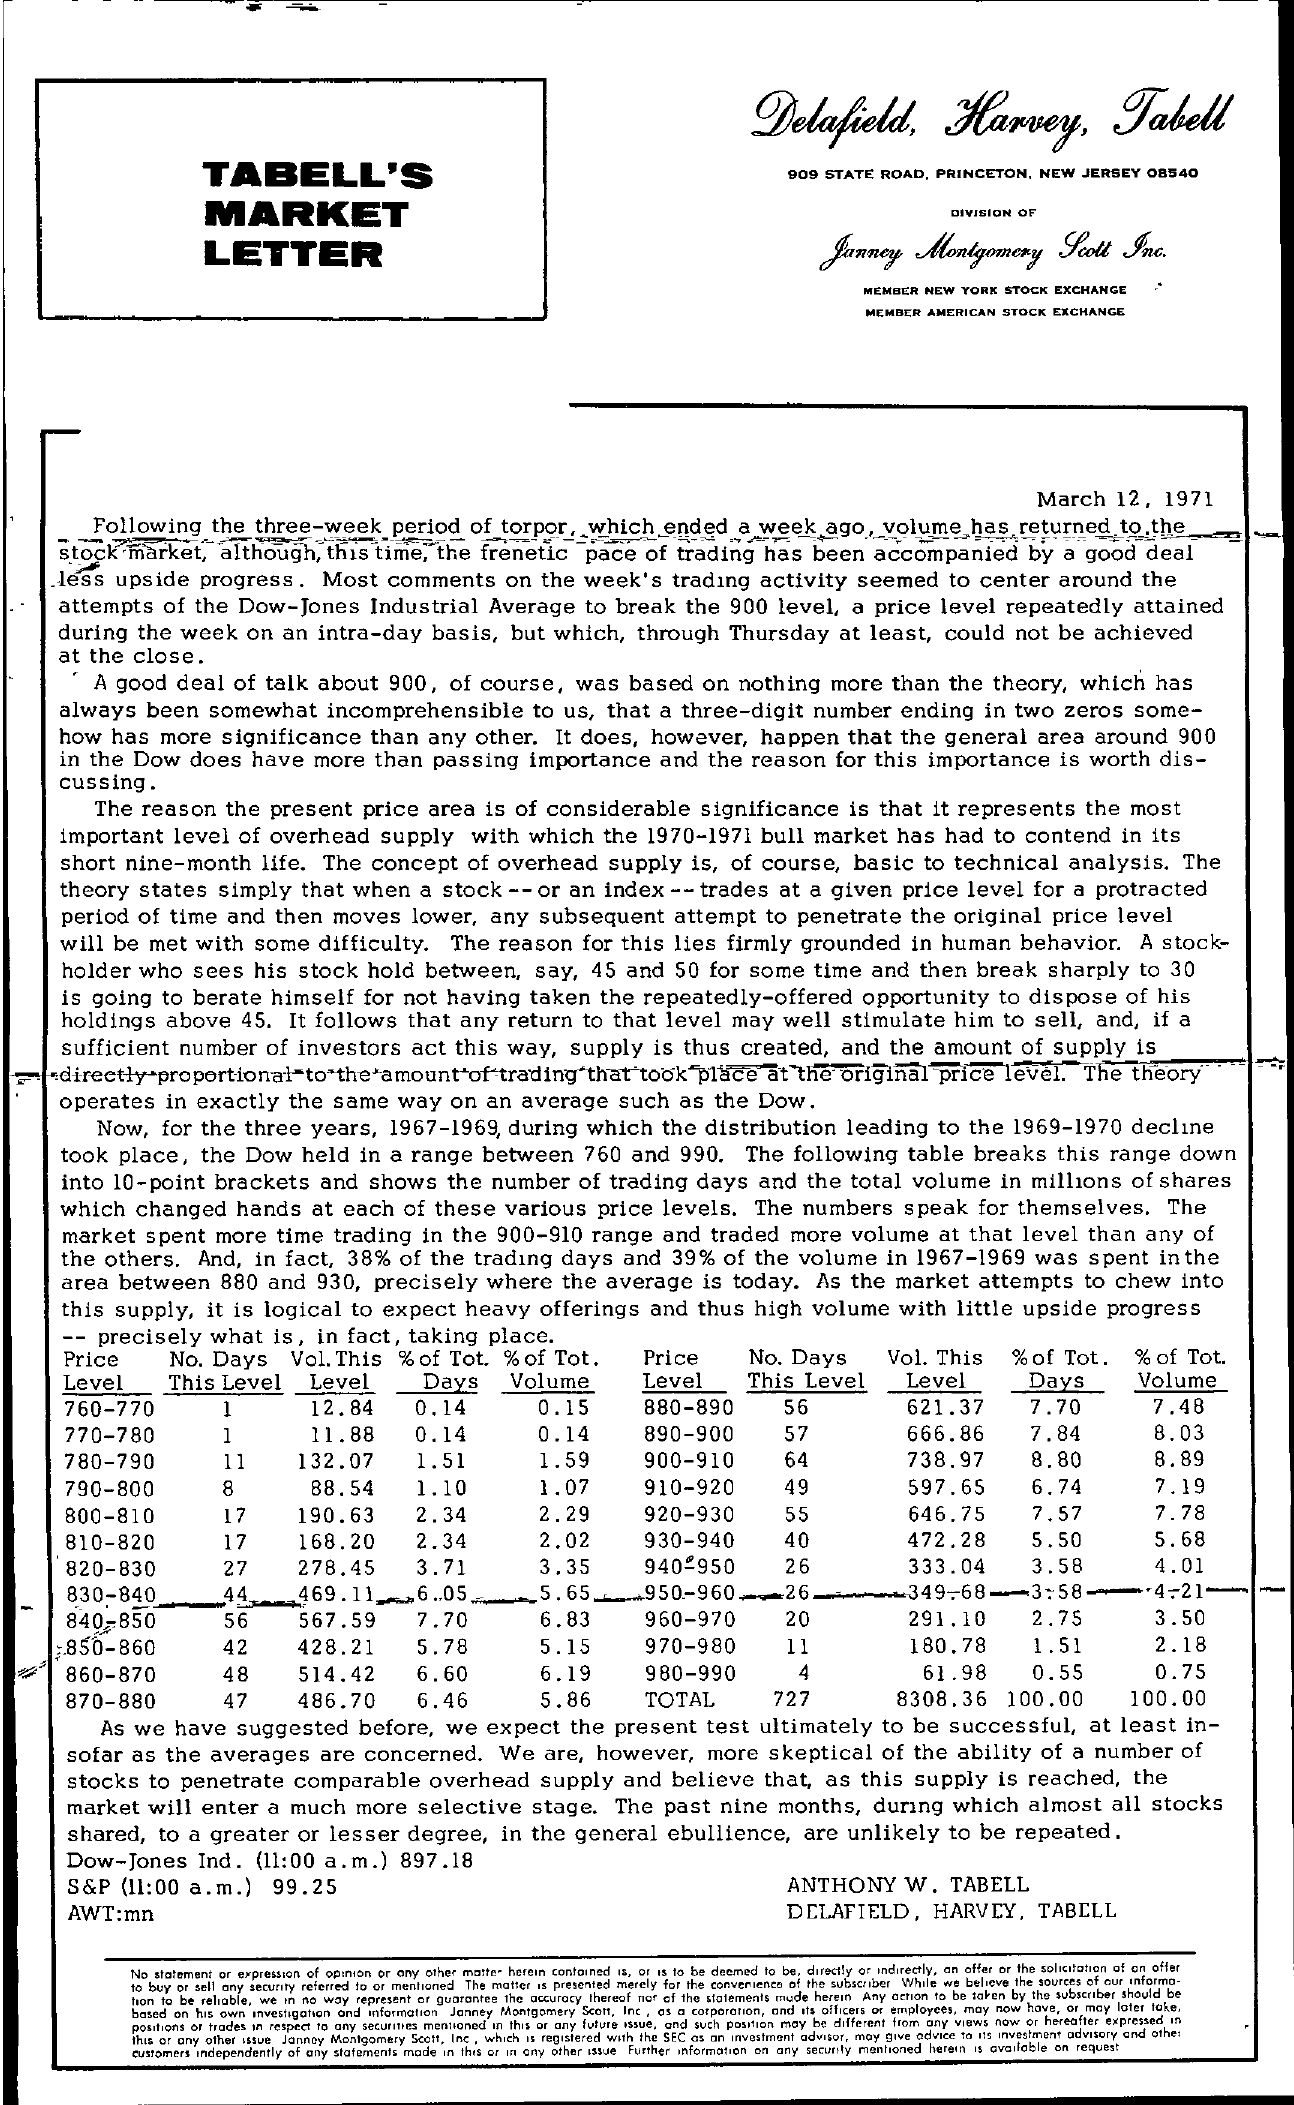 Tabell's Market Letter - March 12, 1971